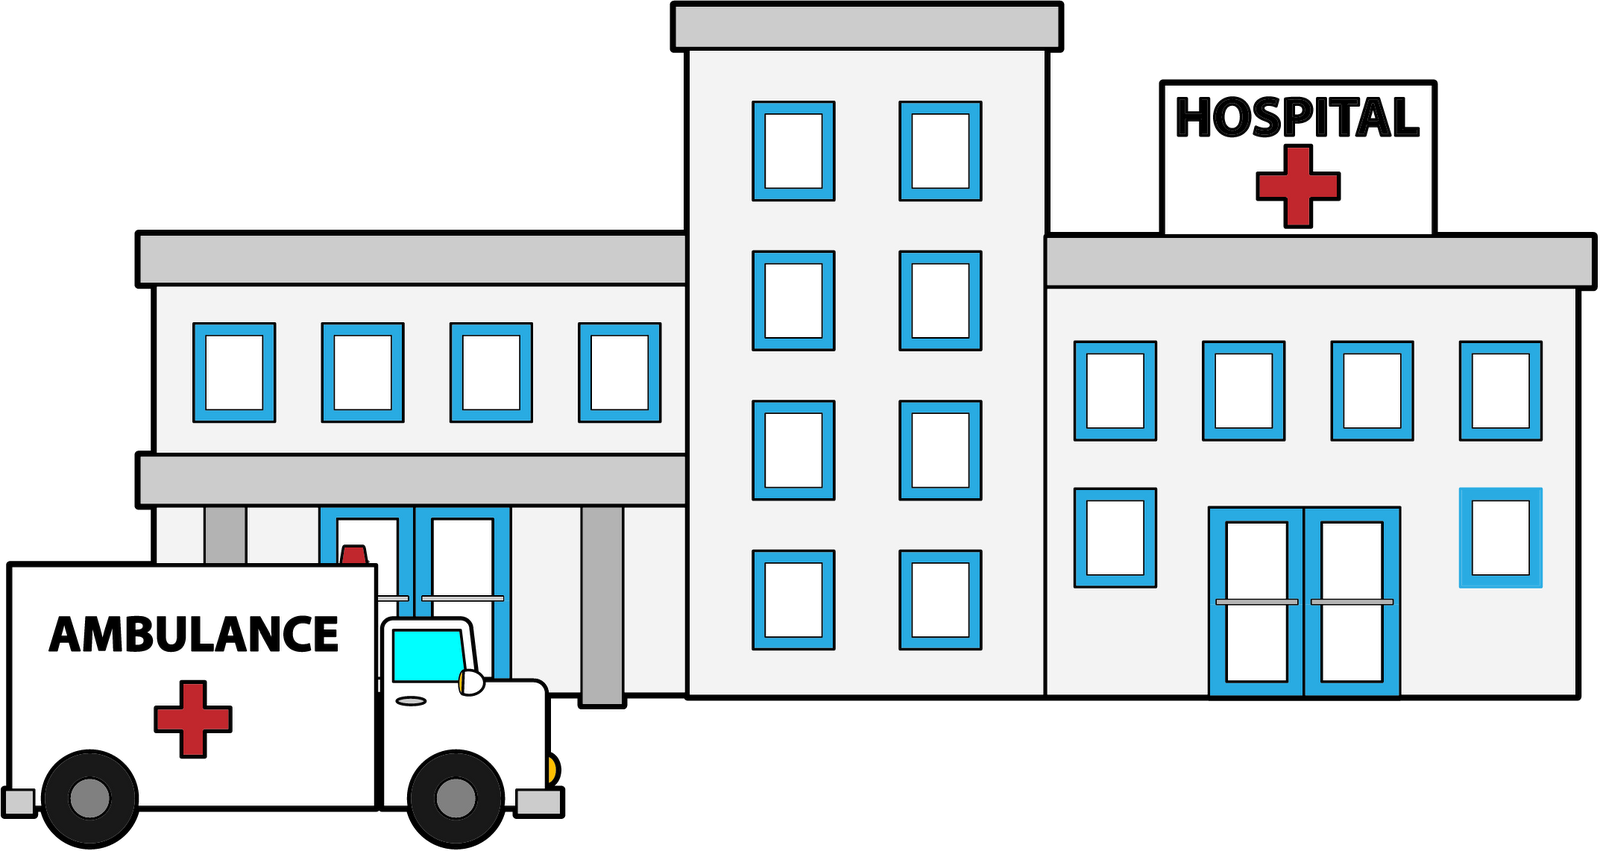 svg free download Hospital clipart. City buildings at getdrawings.